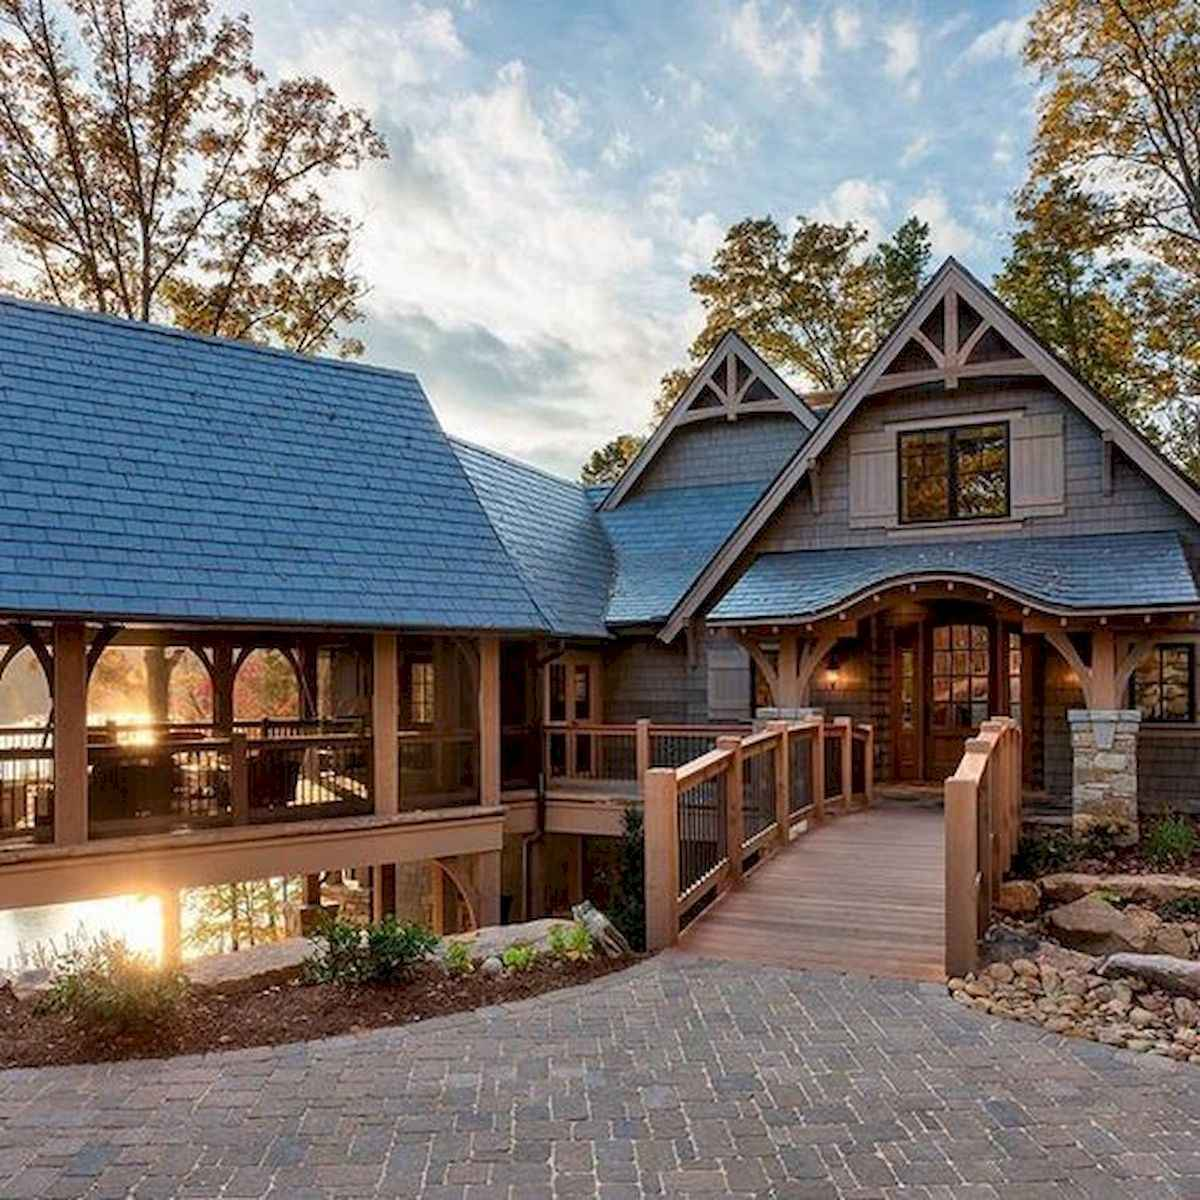 75 Great Log Cabin Homes Plans Design Ideas (3)